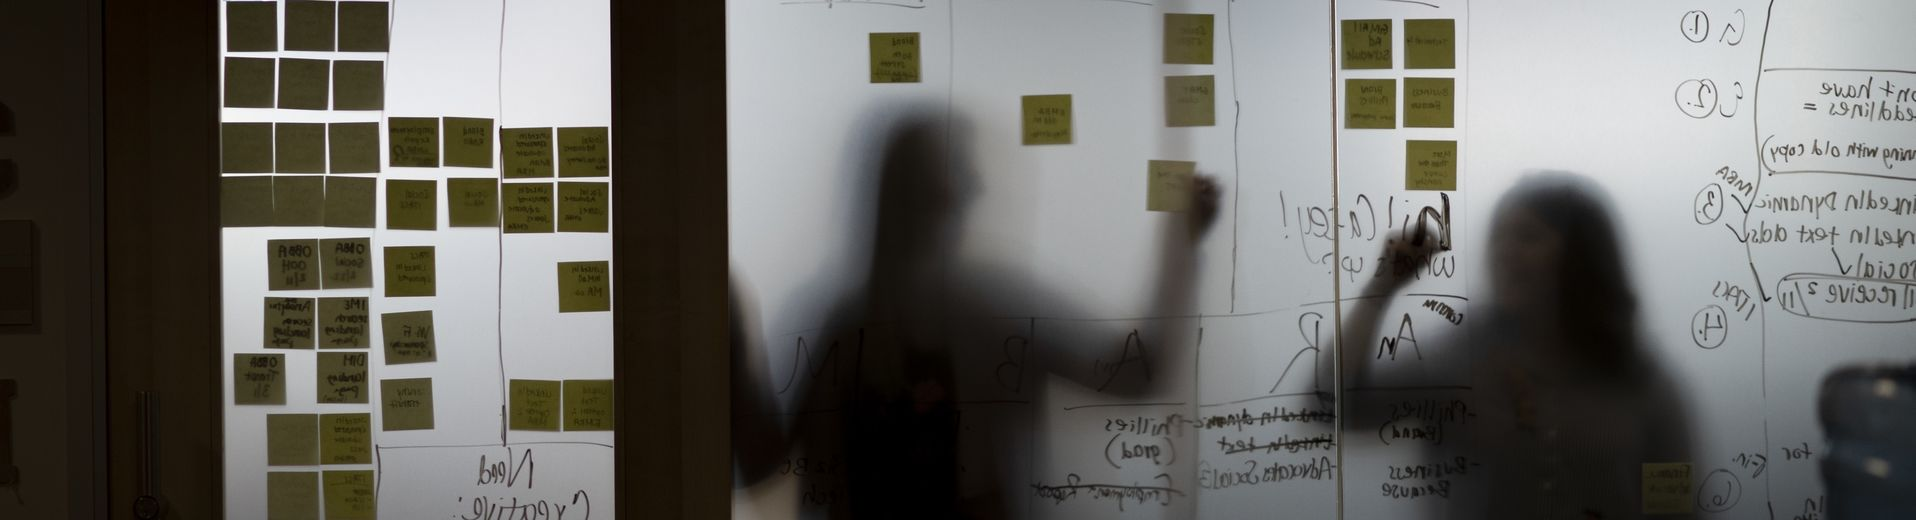 Students attach post-it notes to a glass surface, working on a project.